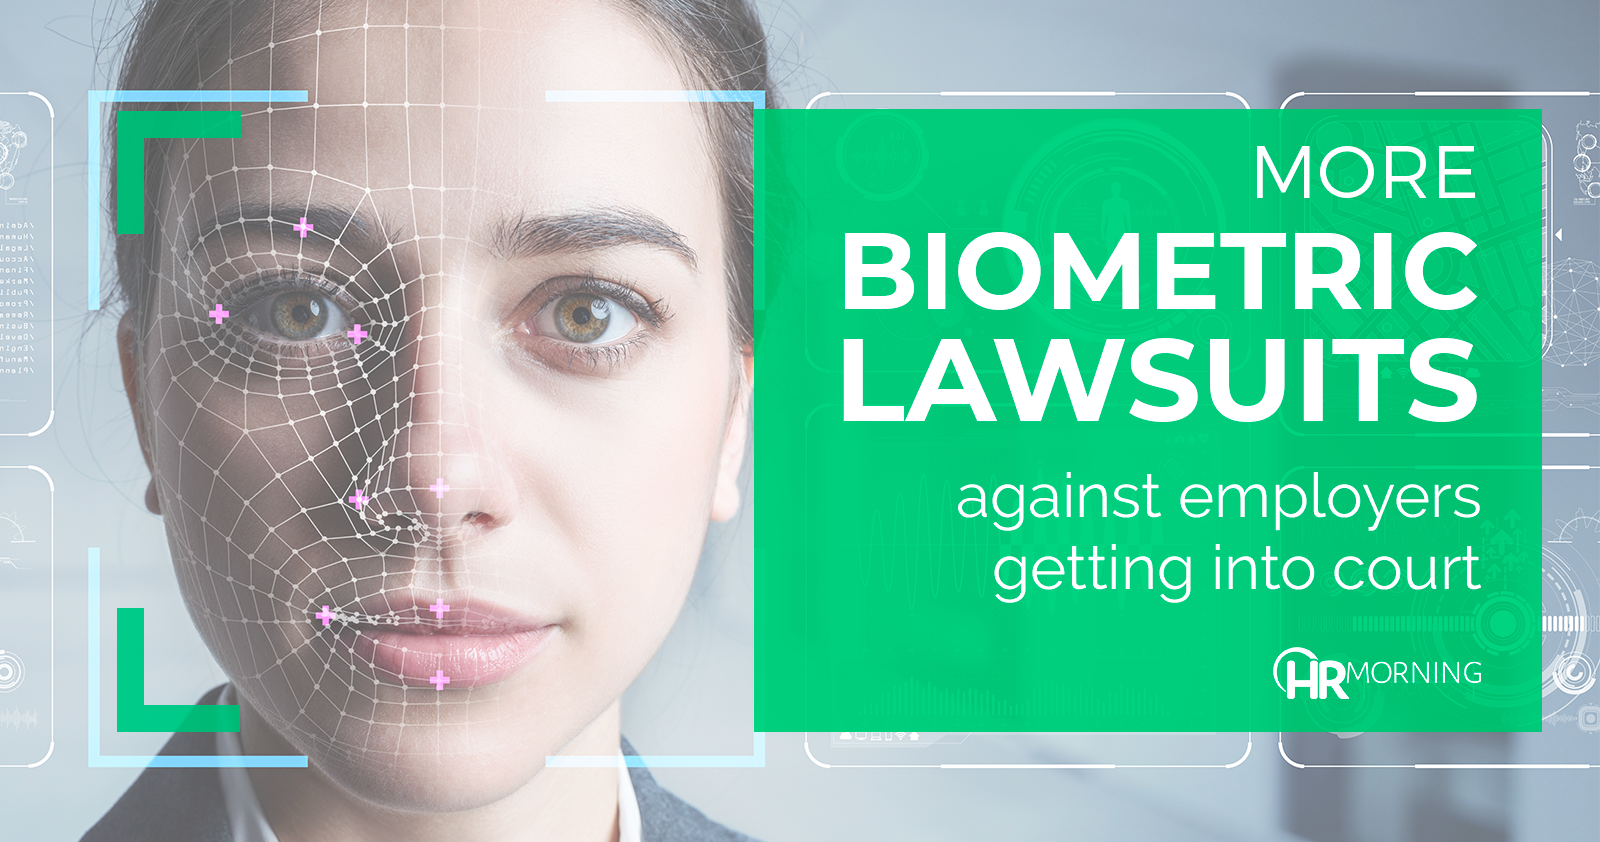 more biometric lawsuits against employers getting into court